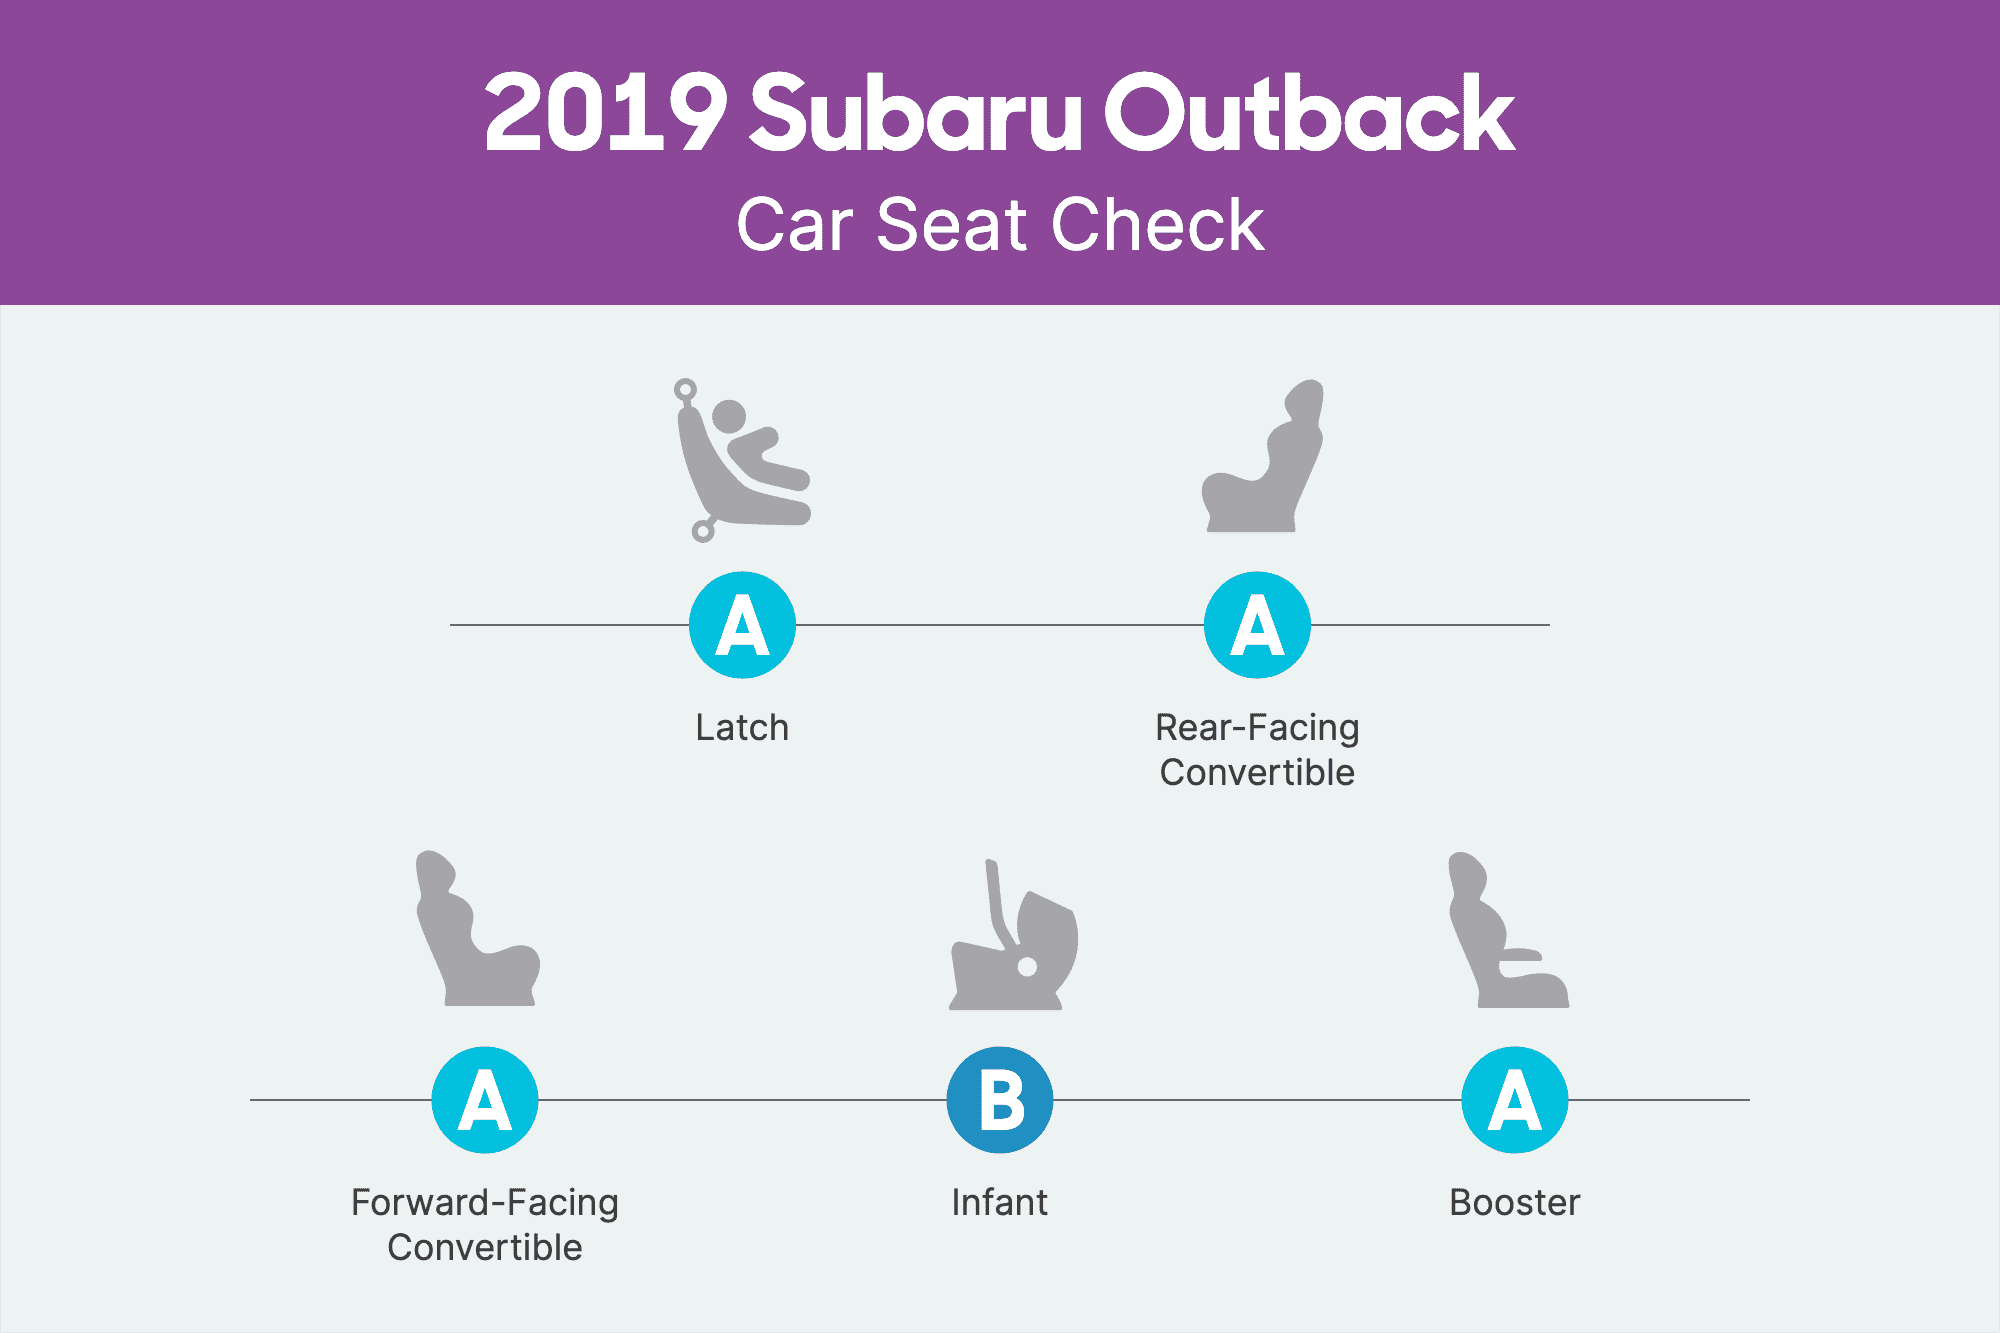 How Do Car Seats Fit in a 2019 Subaru Outback?